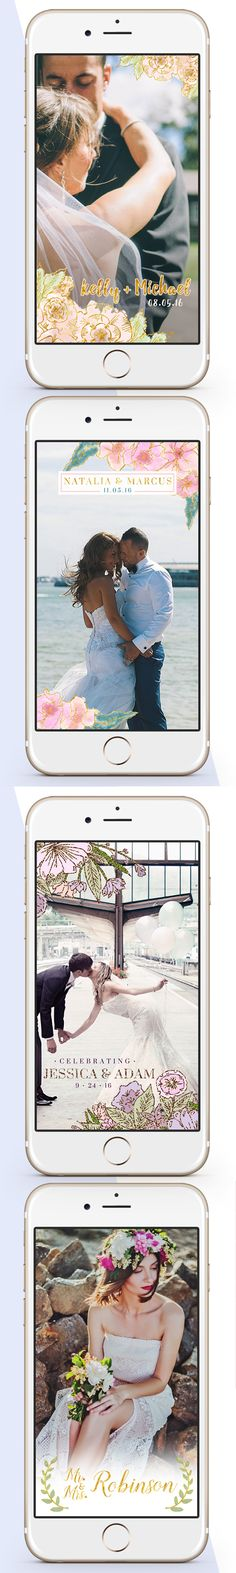 Custom Snapchat Geofilter Personalized Wedding Geo Filter with Customized Names and Date / Watercolor flower floral pastel peach gold foil